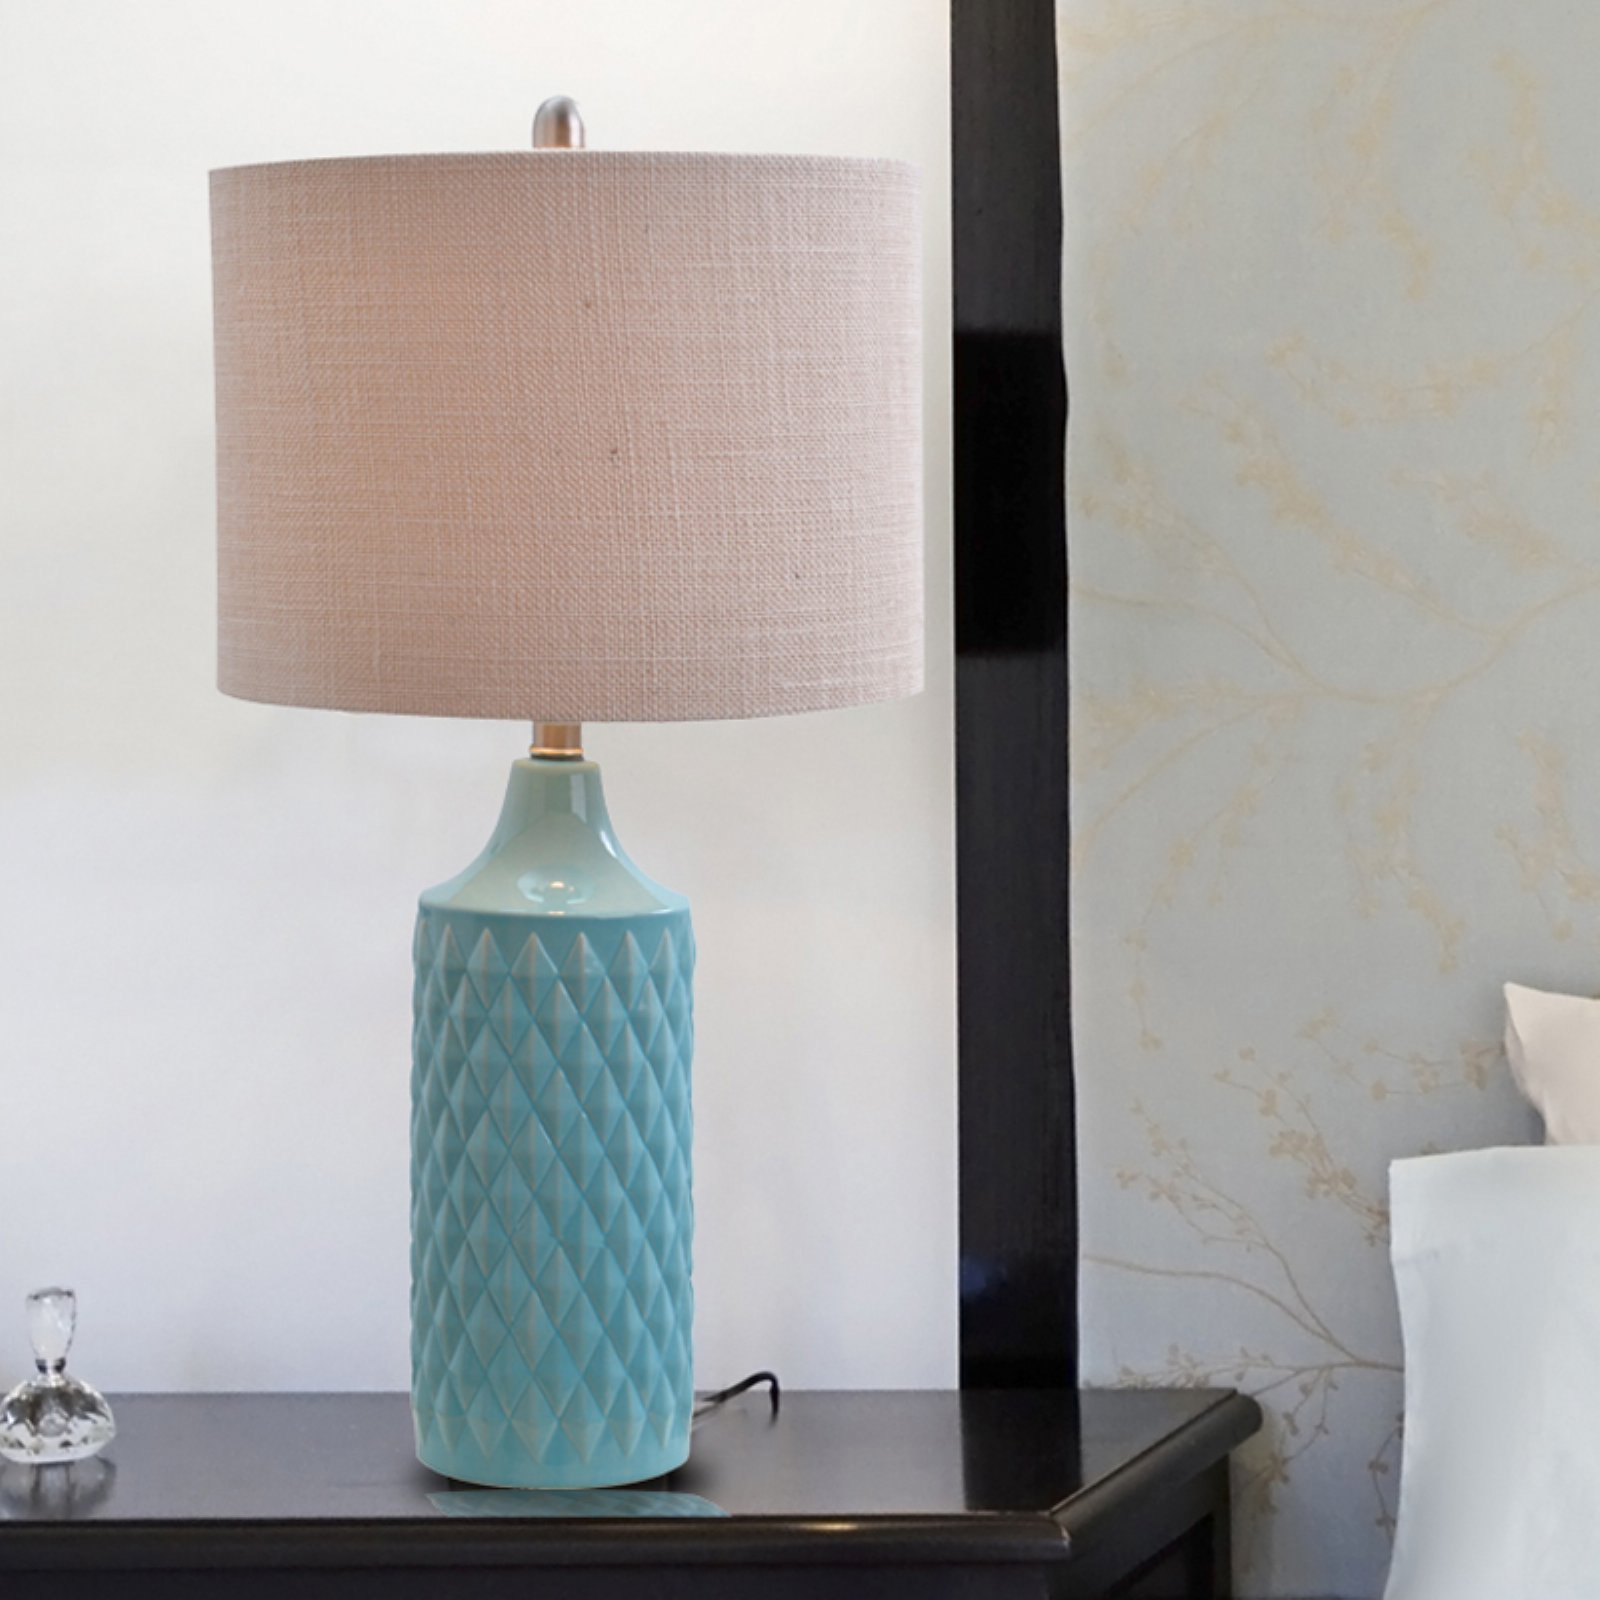 Catalina Lighting 3-Way Quilted Ceramic Table Lamp with Natural Linen Drum Shade by Evolution Lighting LLC